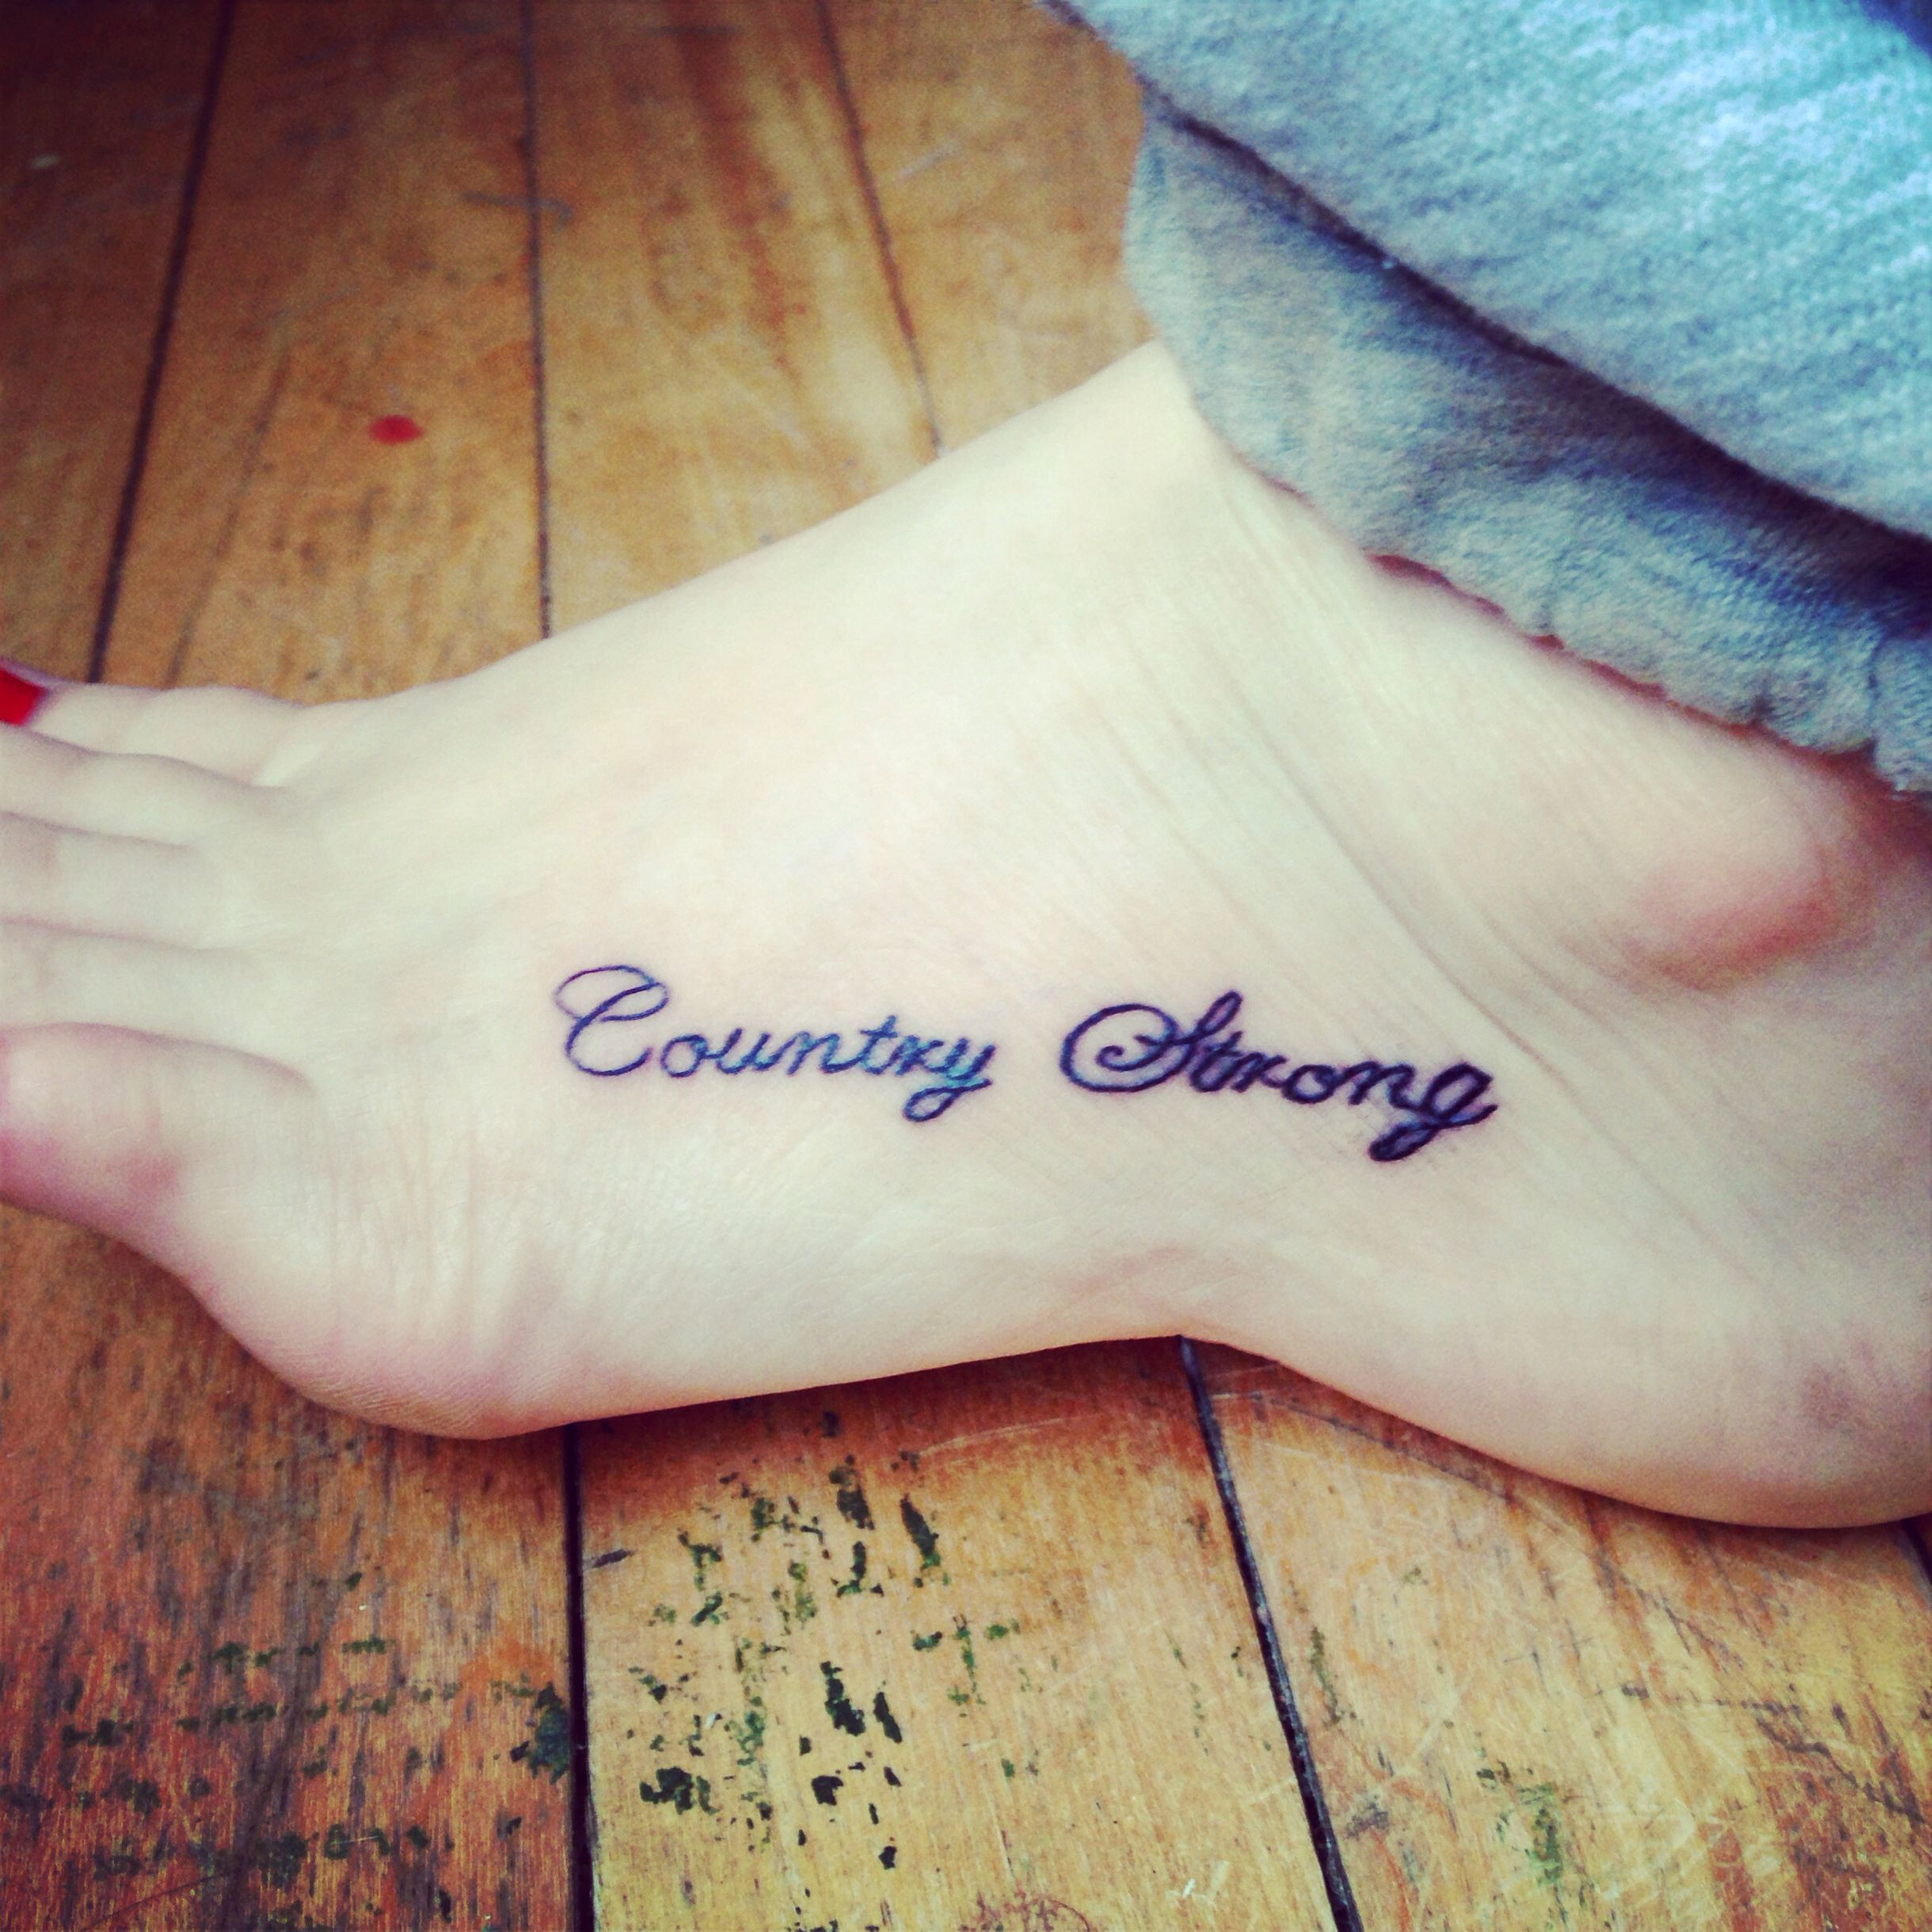 1e2558ba5 Country strong tattoo on foot.i love this tattoo but not on my foot, maybe  on my shoulder